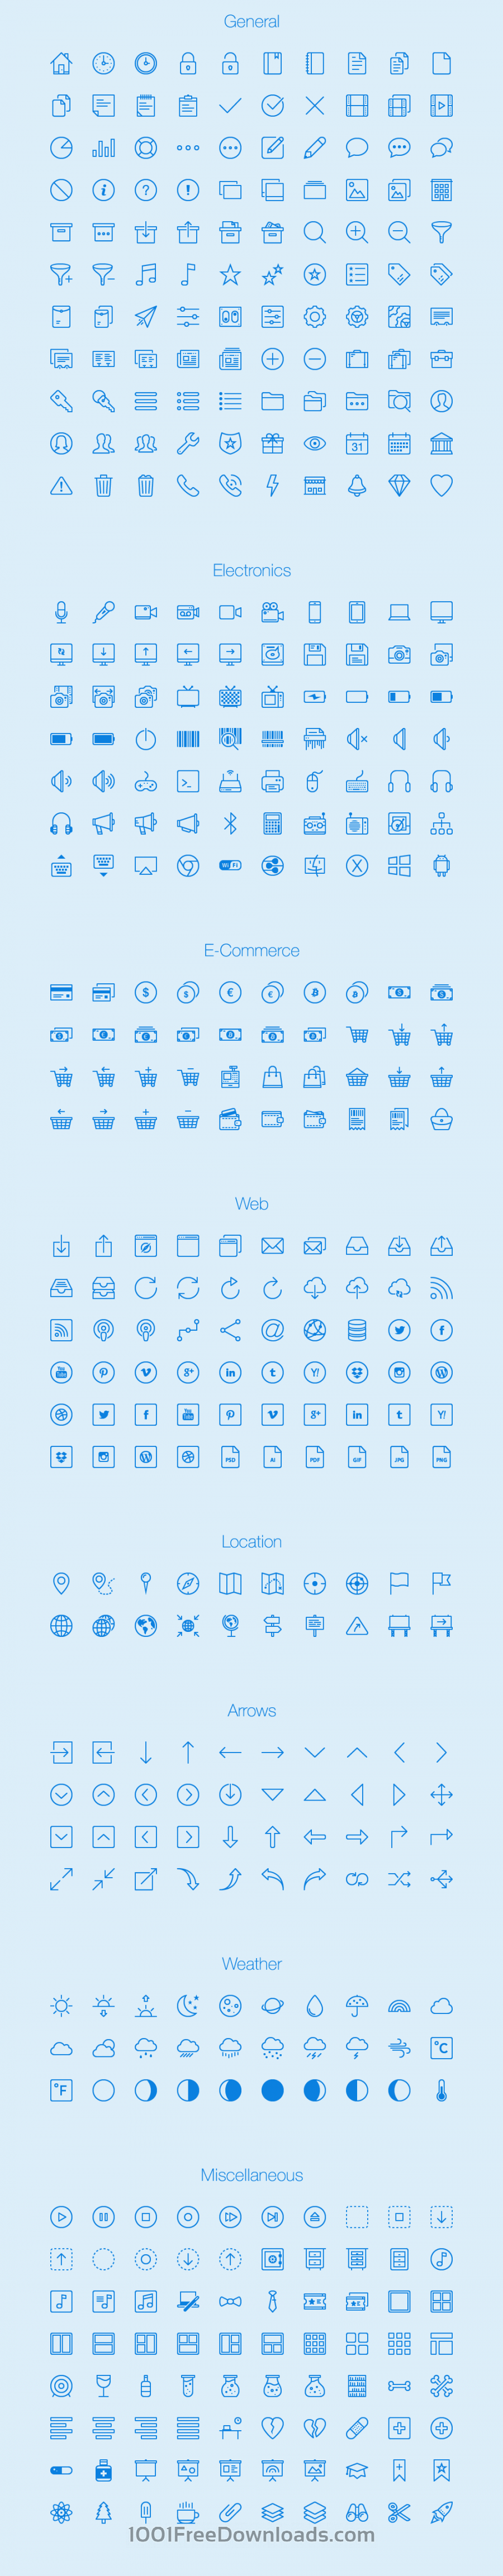 Free Vectors: Lynny Icons - Full | Icons